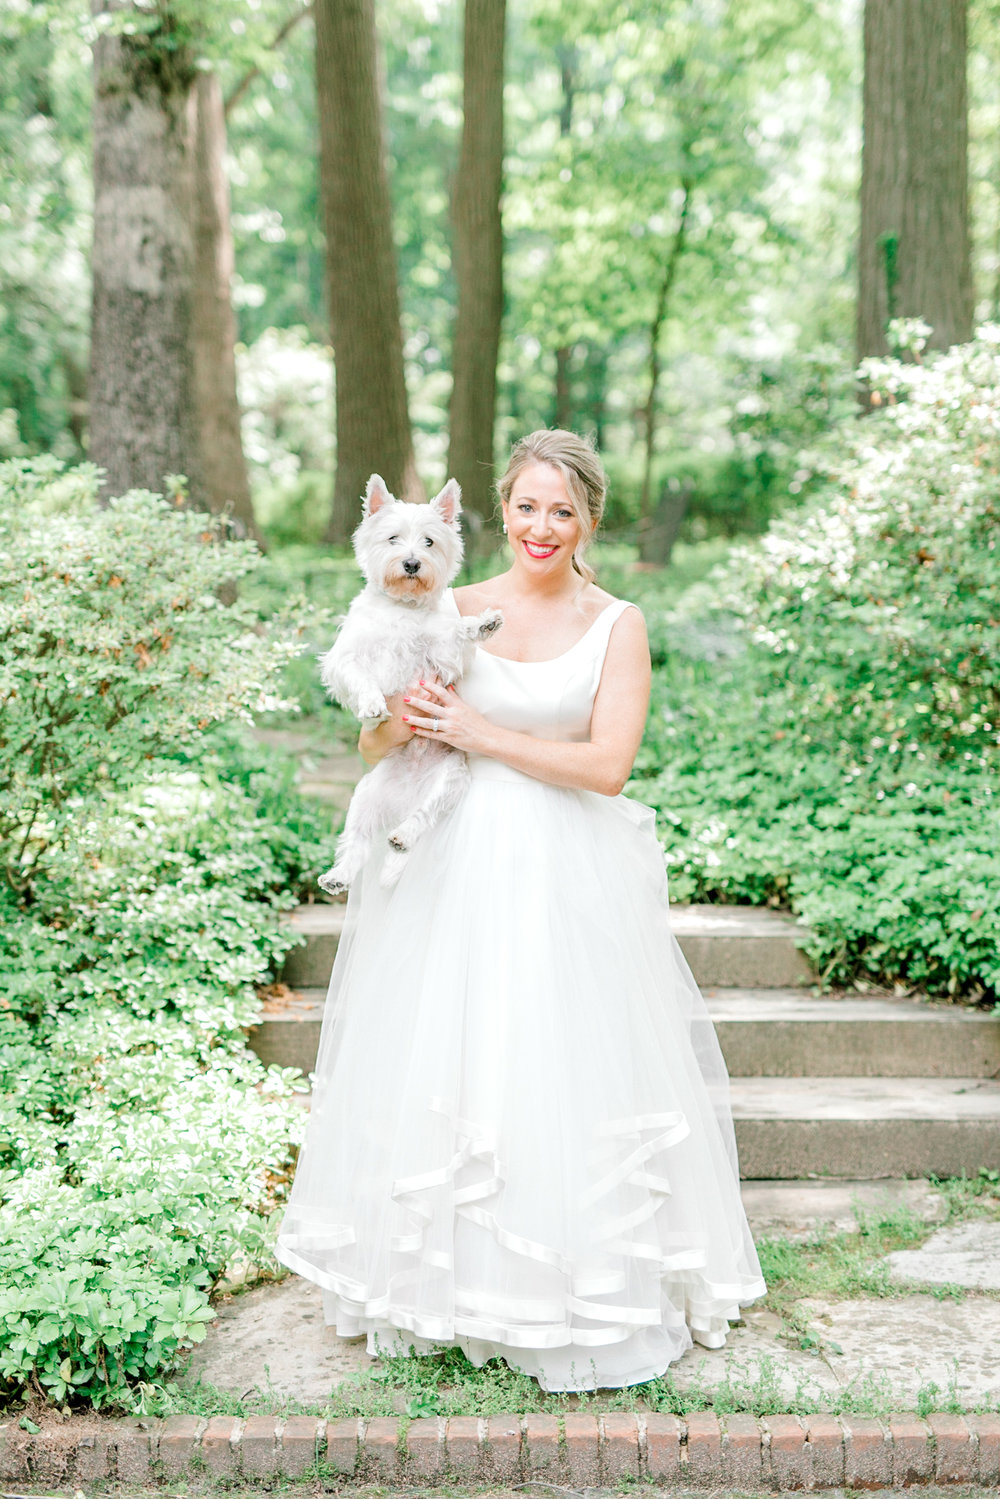 Kerry looking all bright and smiley with her sweet Scottie, Chester the morning of her Italian themed wedding at the Baltimore Country Club.